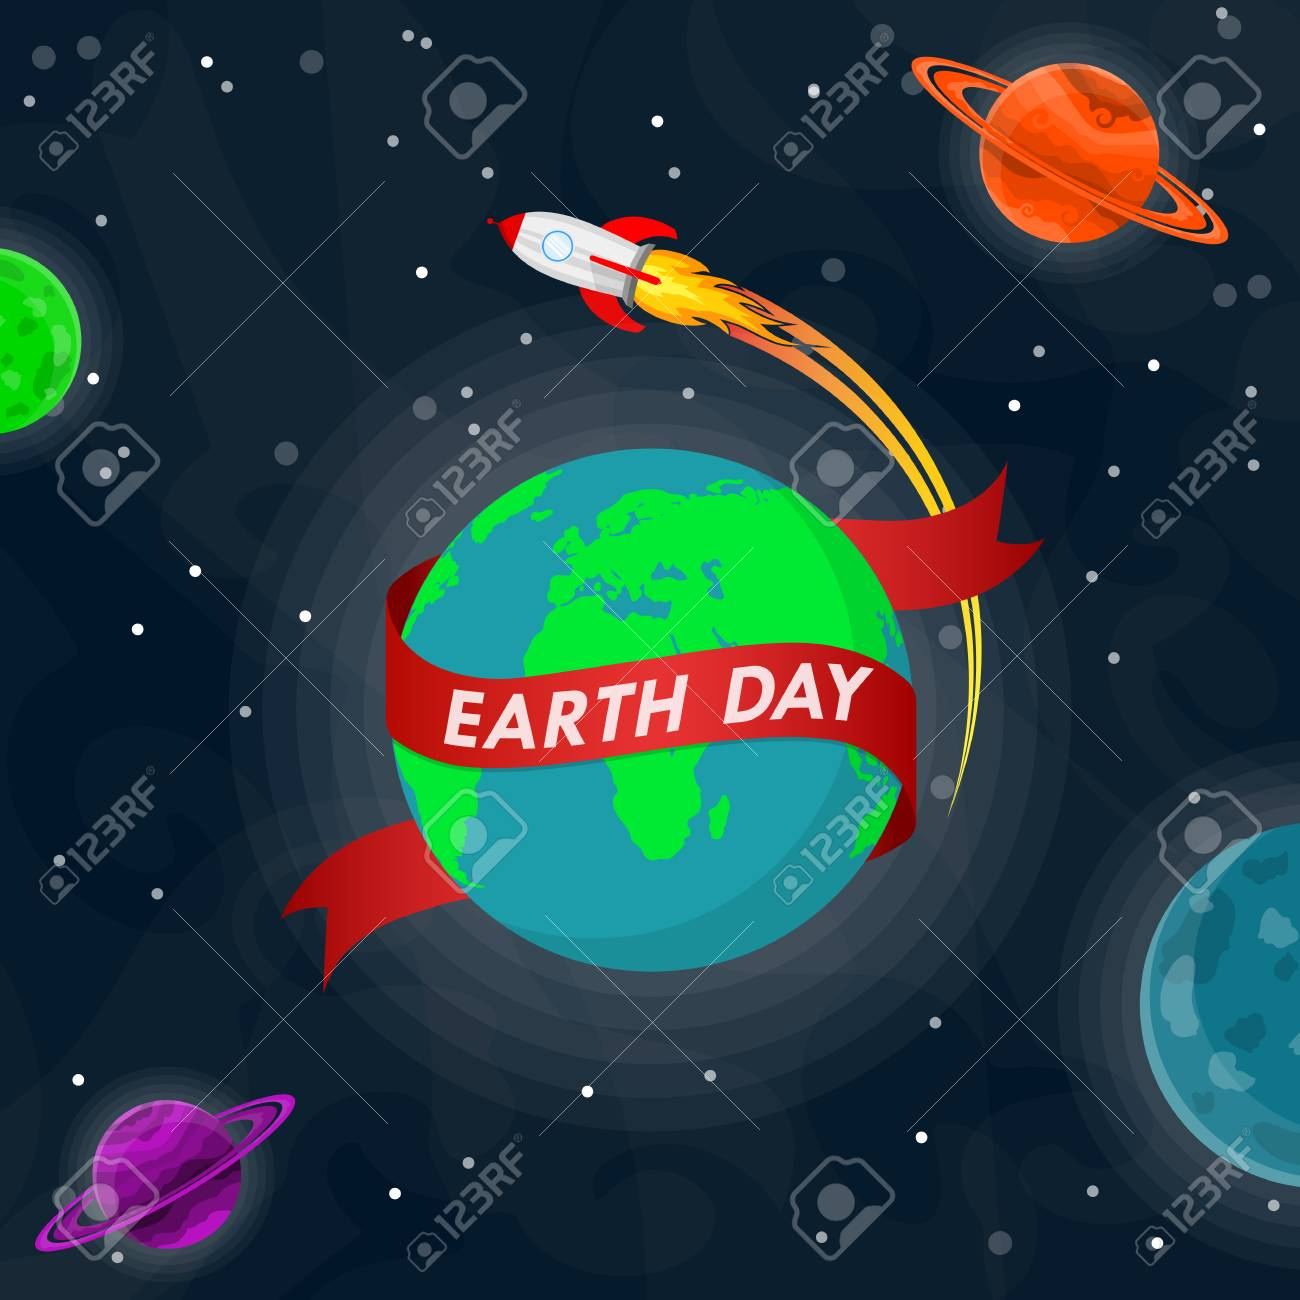 world earth day poster with earth globe and rocket in outer space